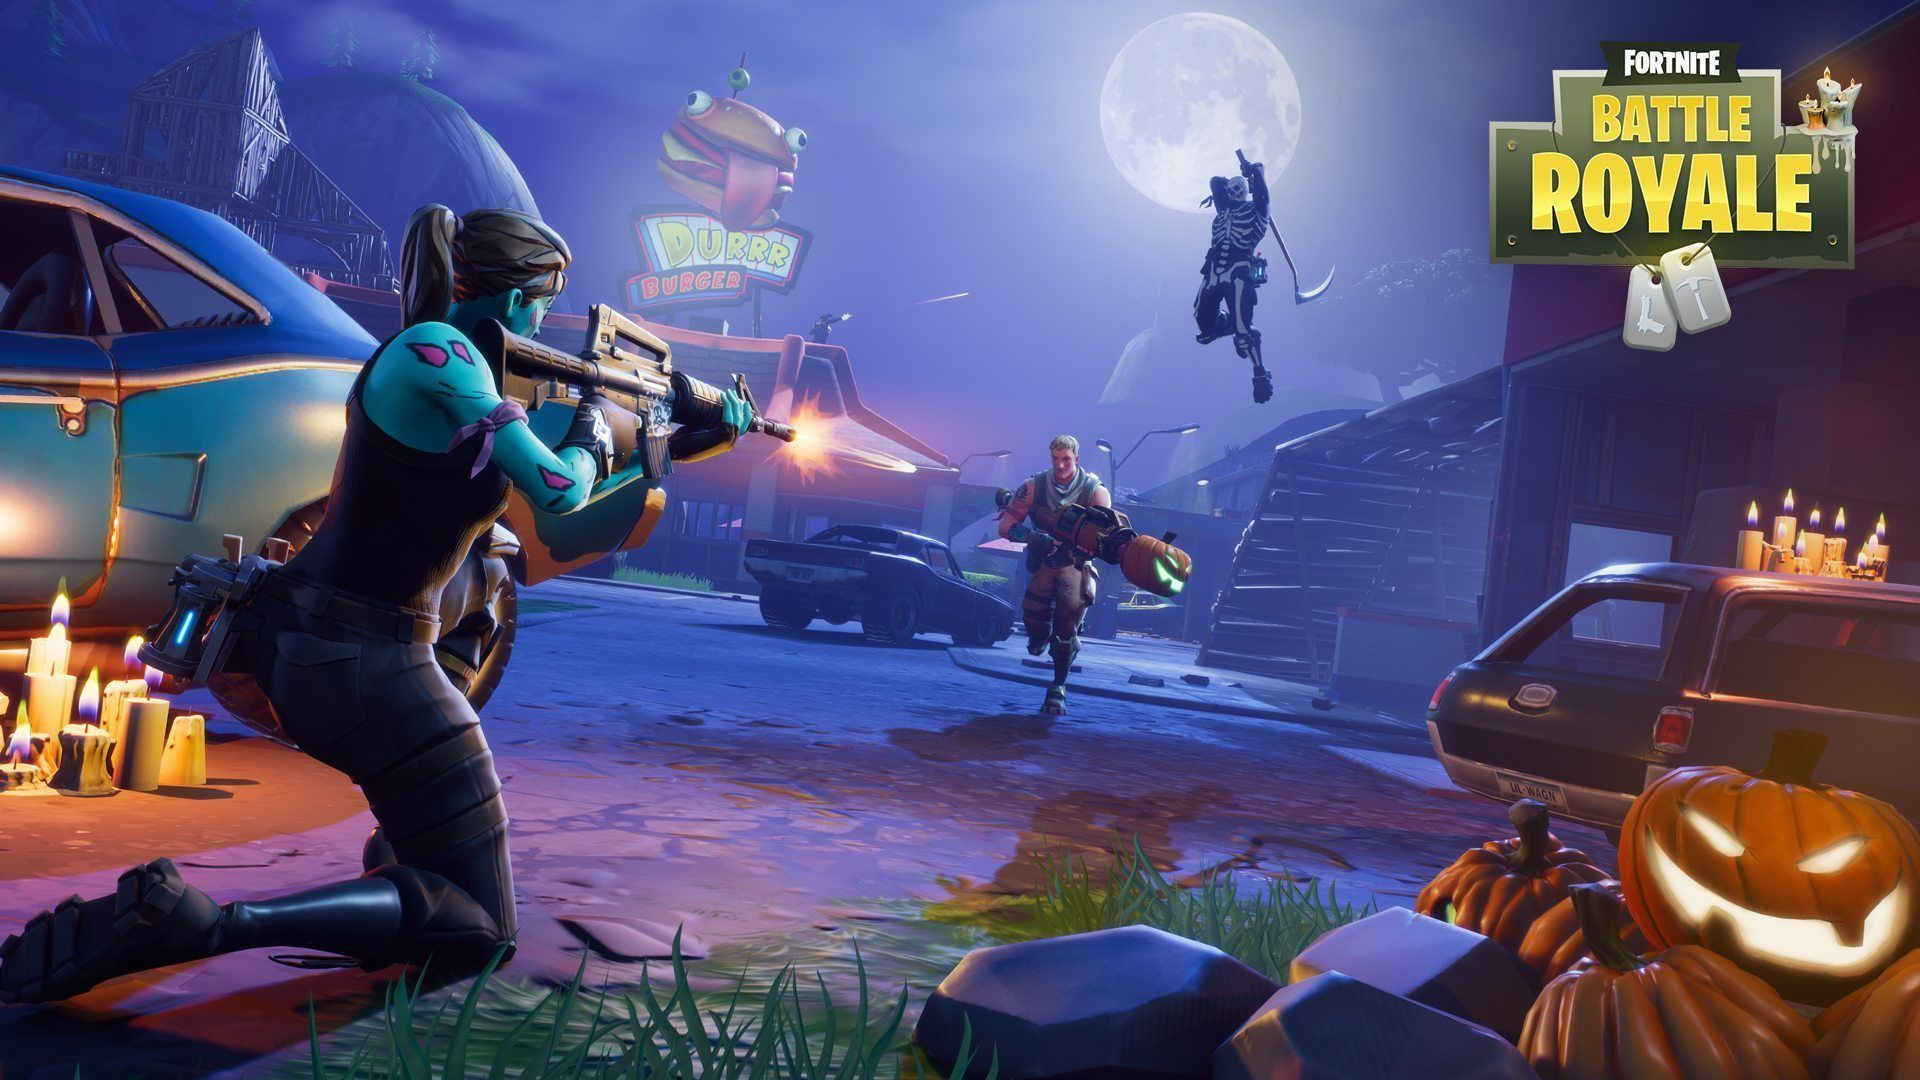 1920x1080 fortnite-battle-royale-game-wallpaper-62258-64192-hd-wallpapers ...